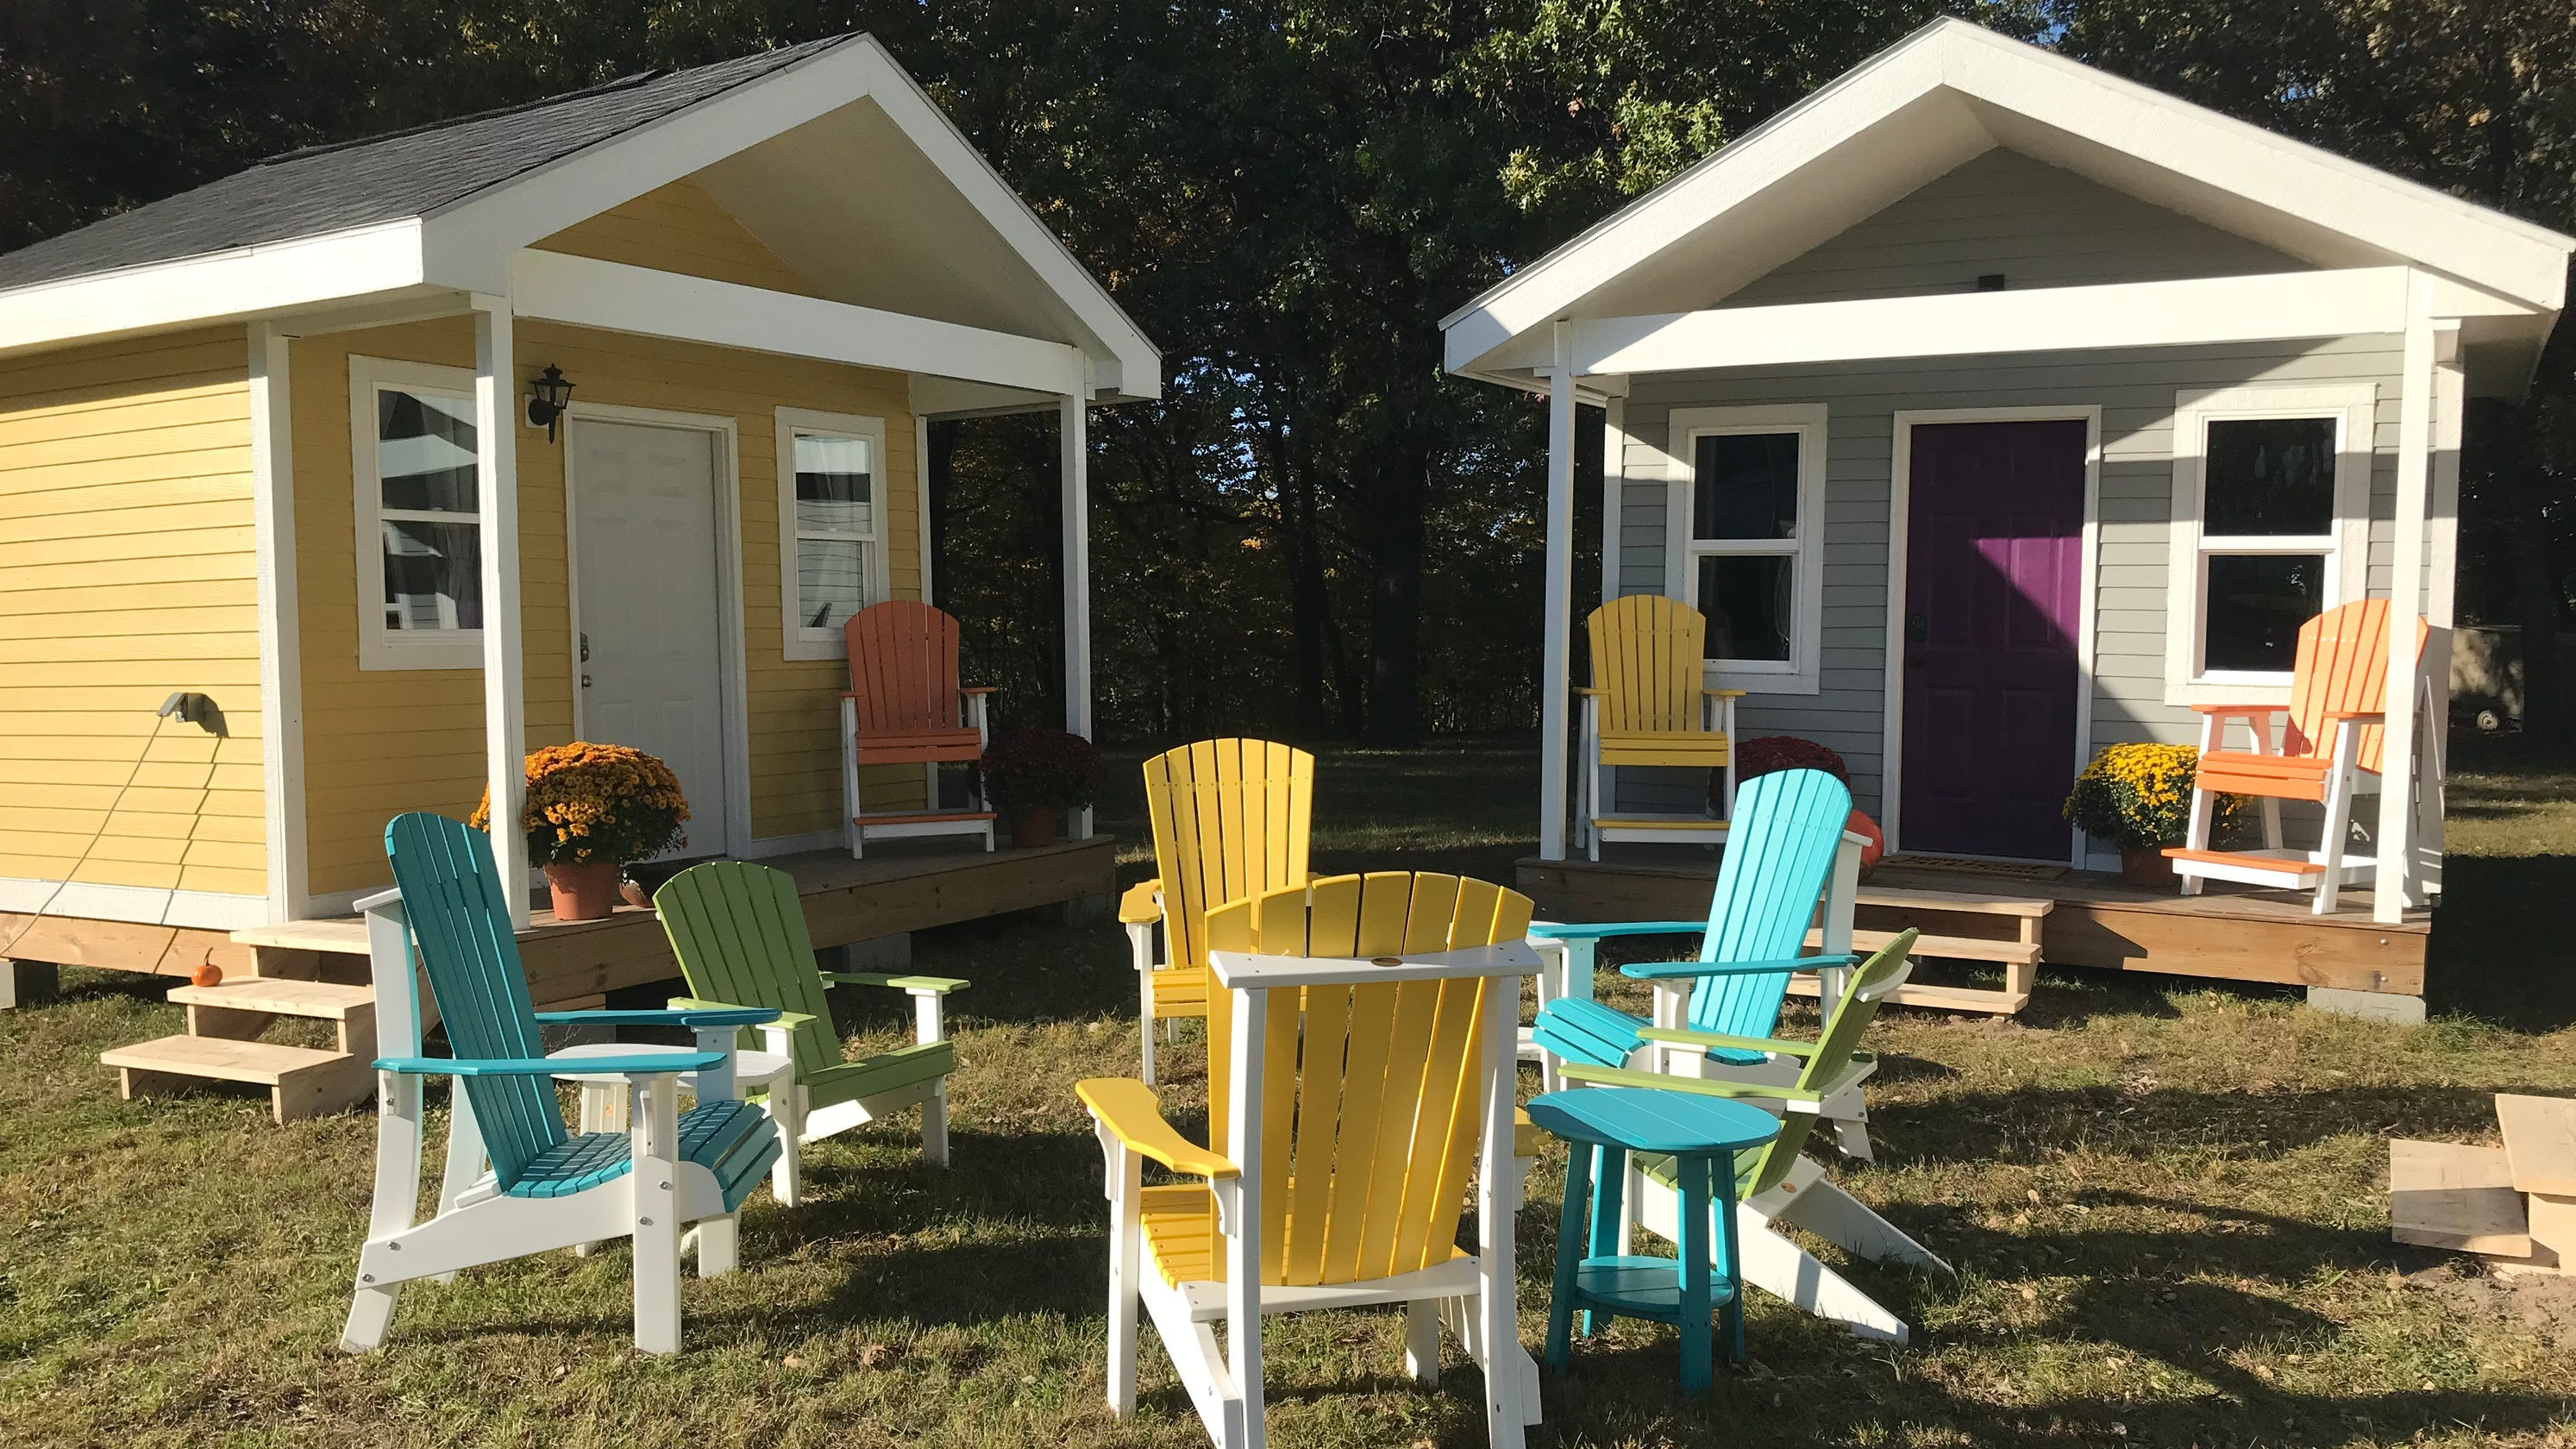 Tiny House Village For Homeless Good Intentions Maybe Not Right Idea